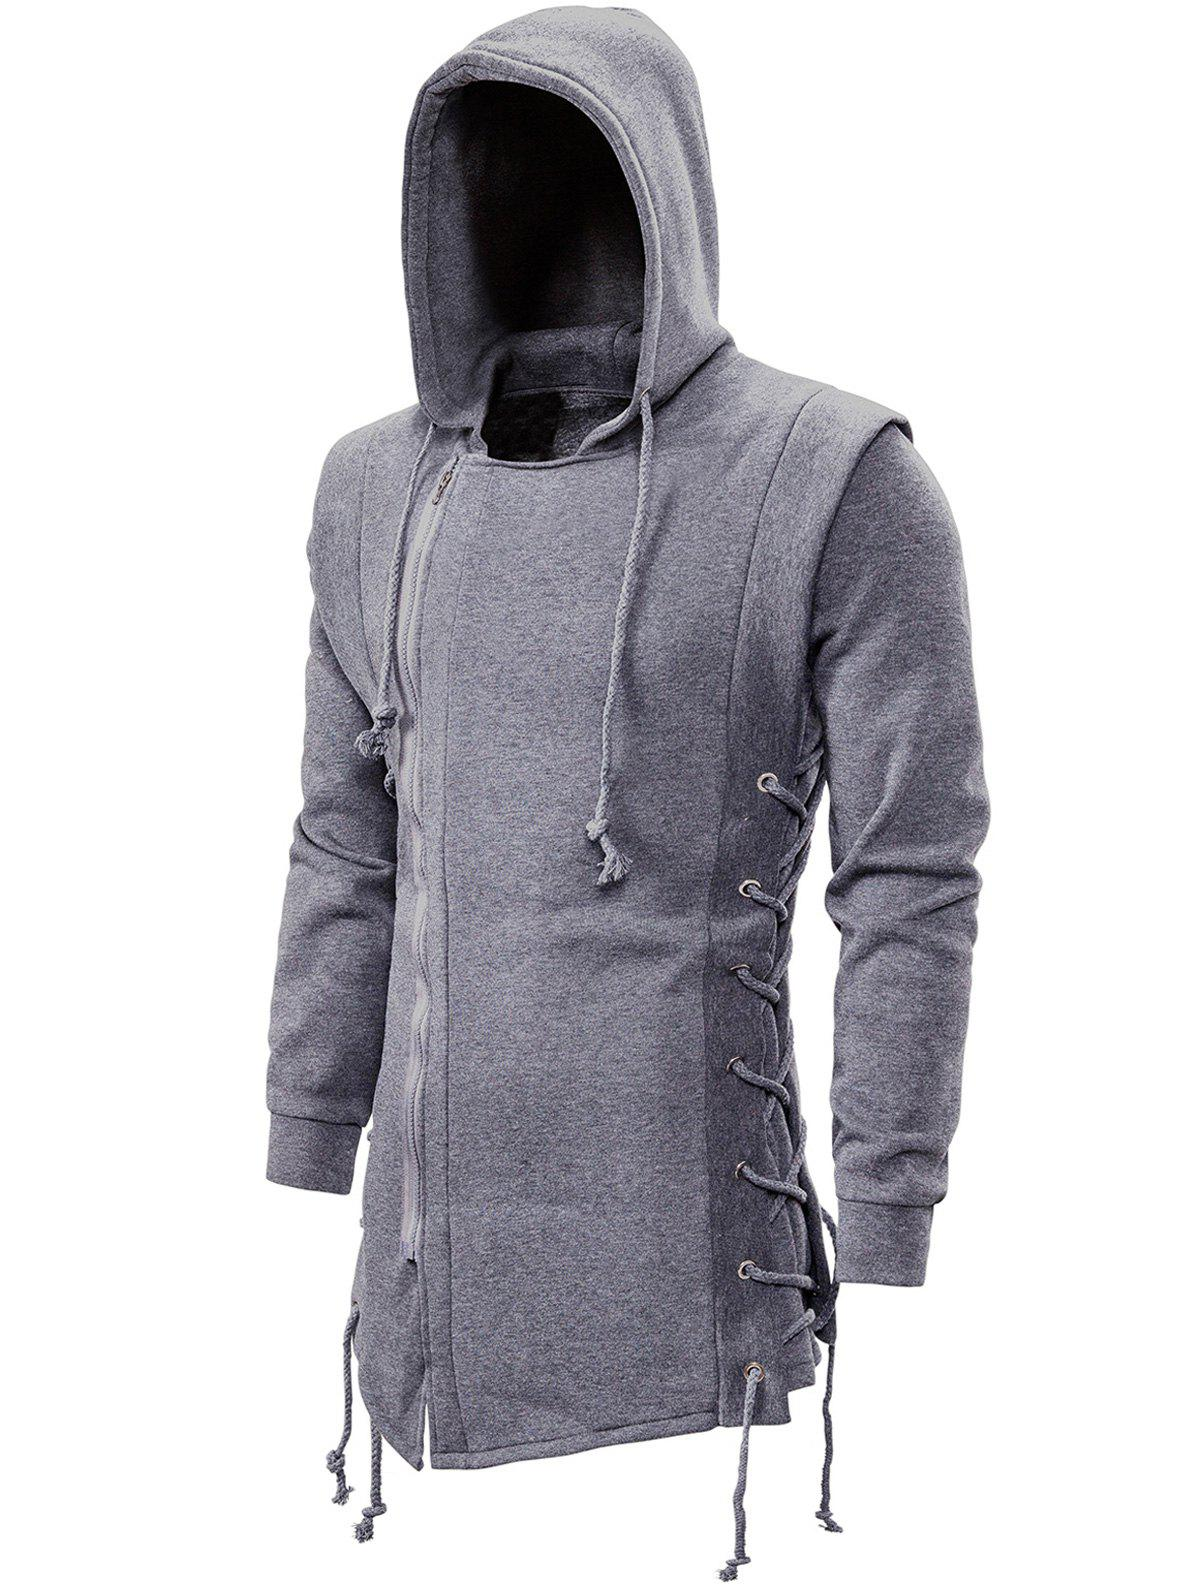 Fancy Side Lace Up Fleece Gothic Hoodie